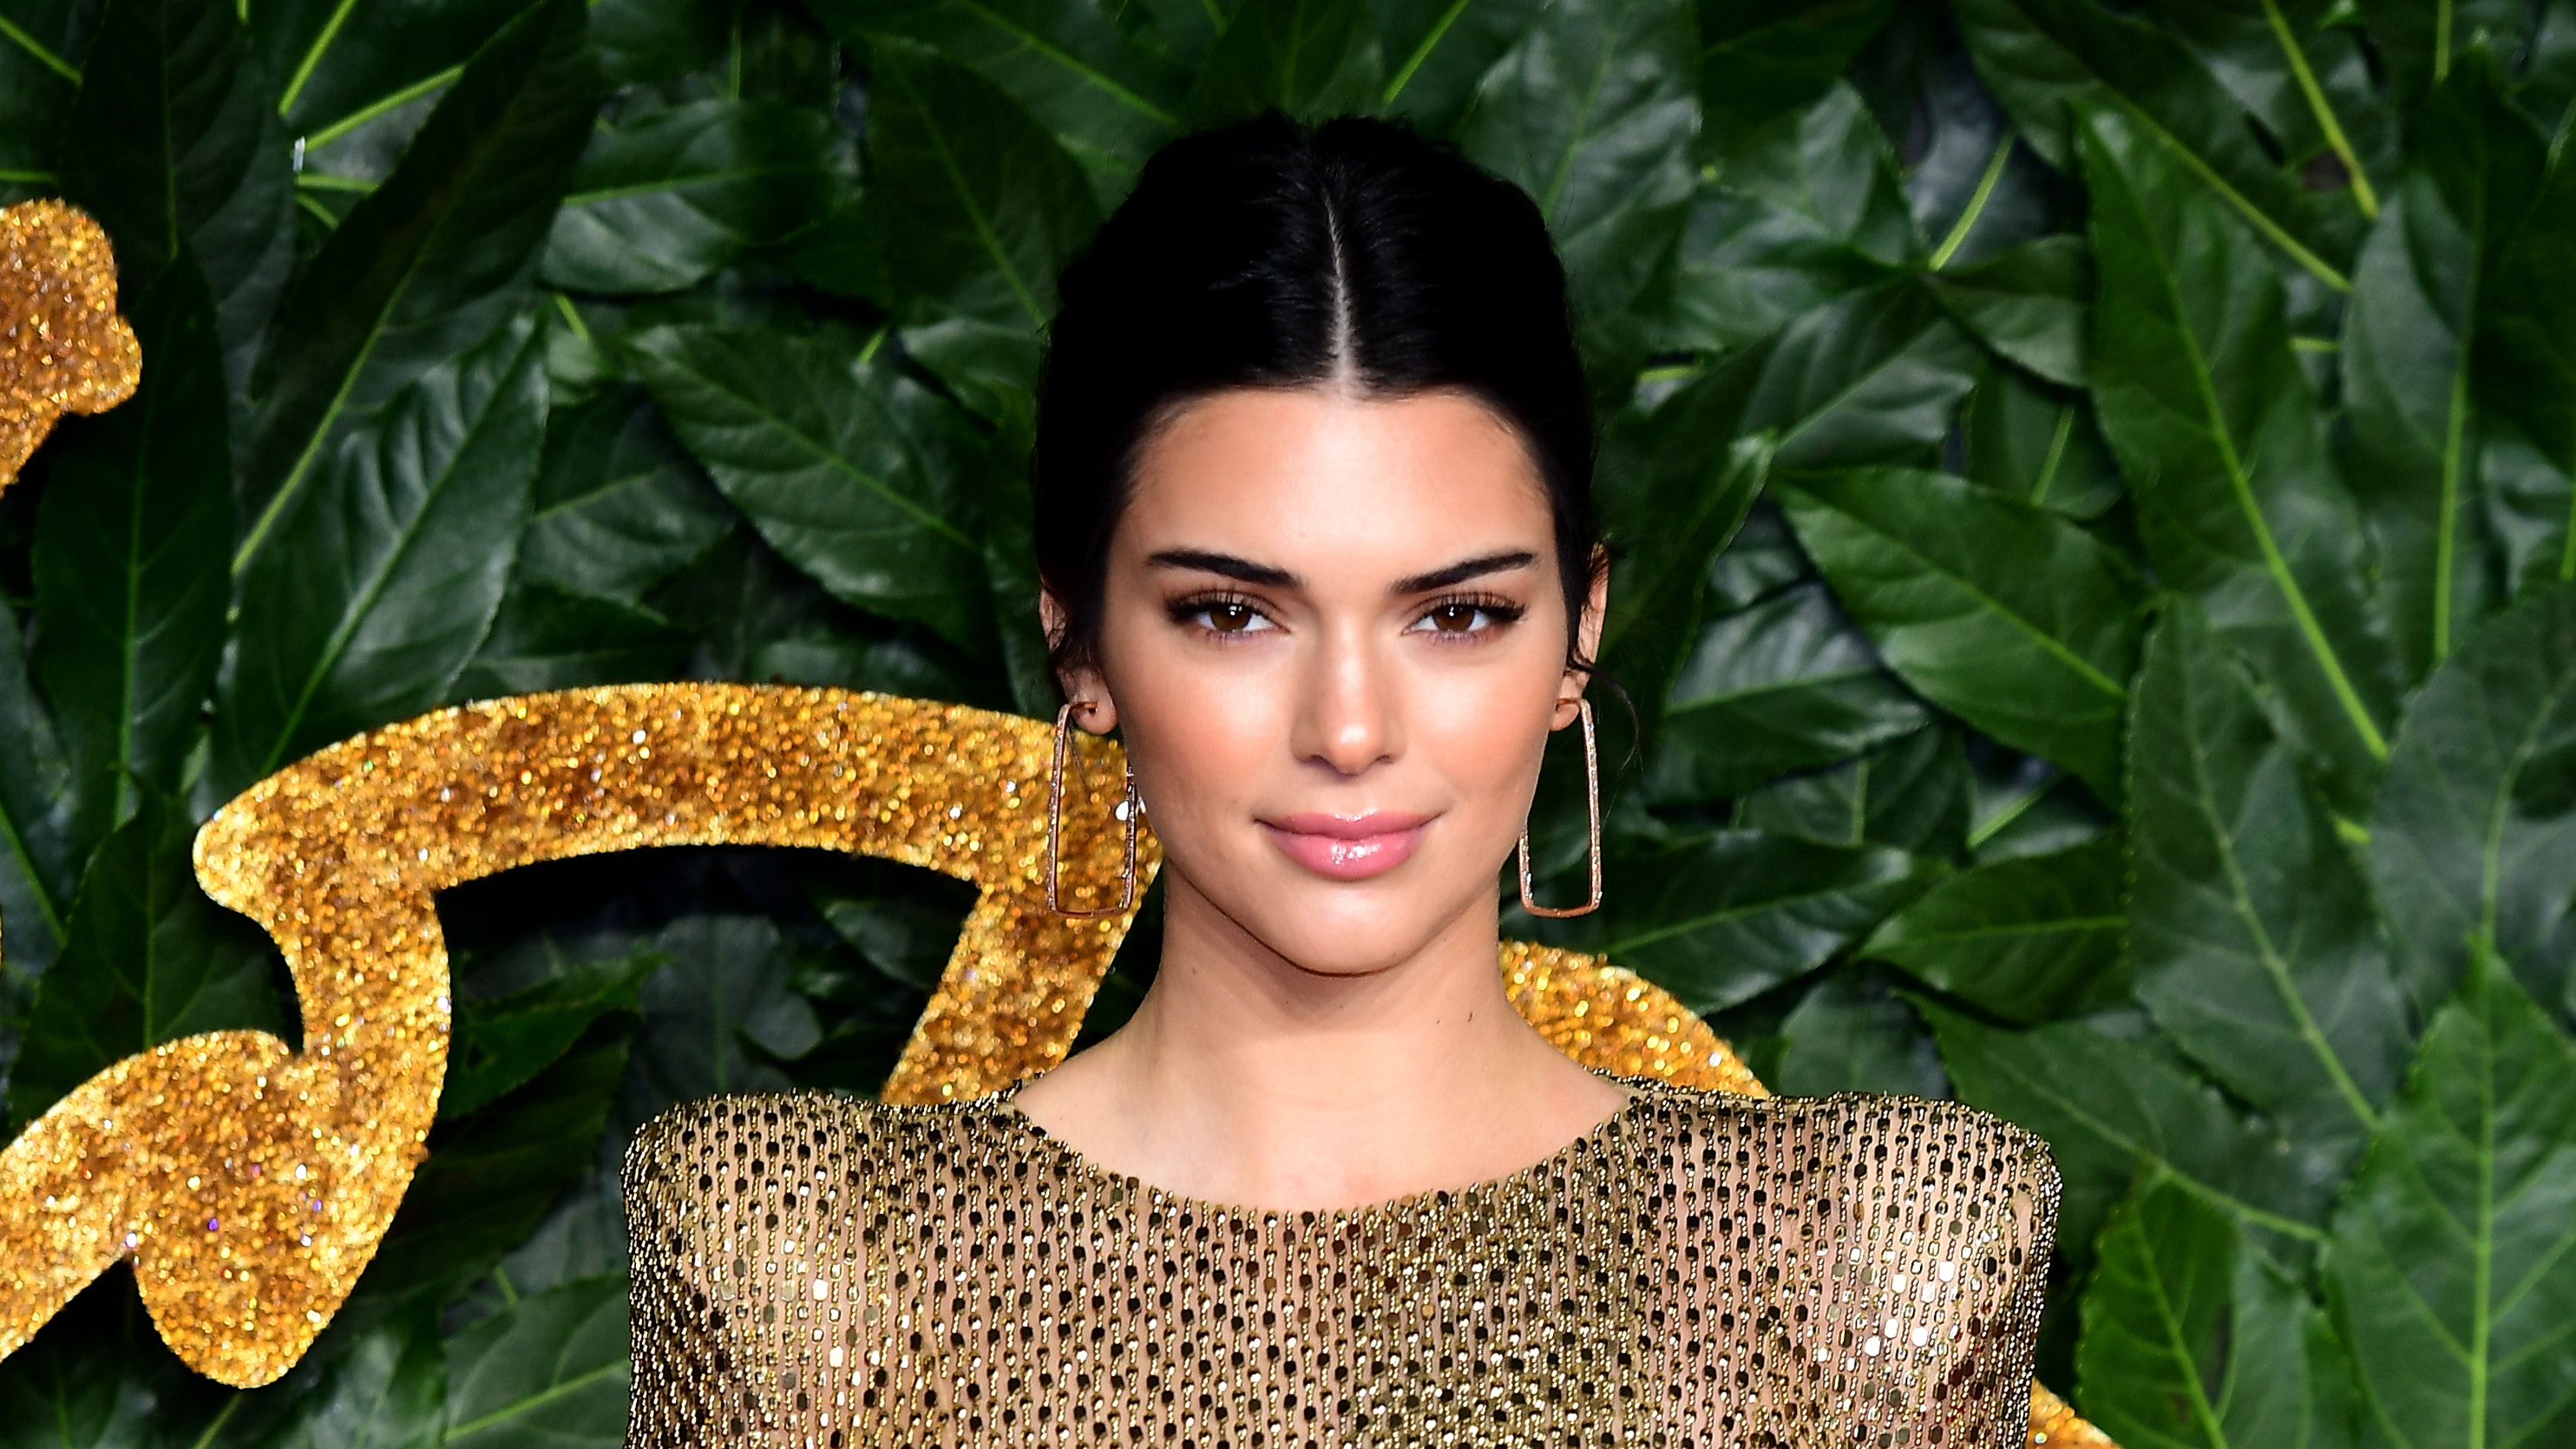 Who is the world's highest paid model 2018?